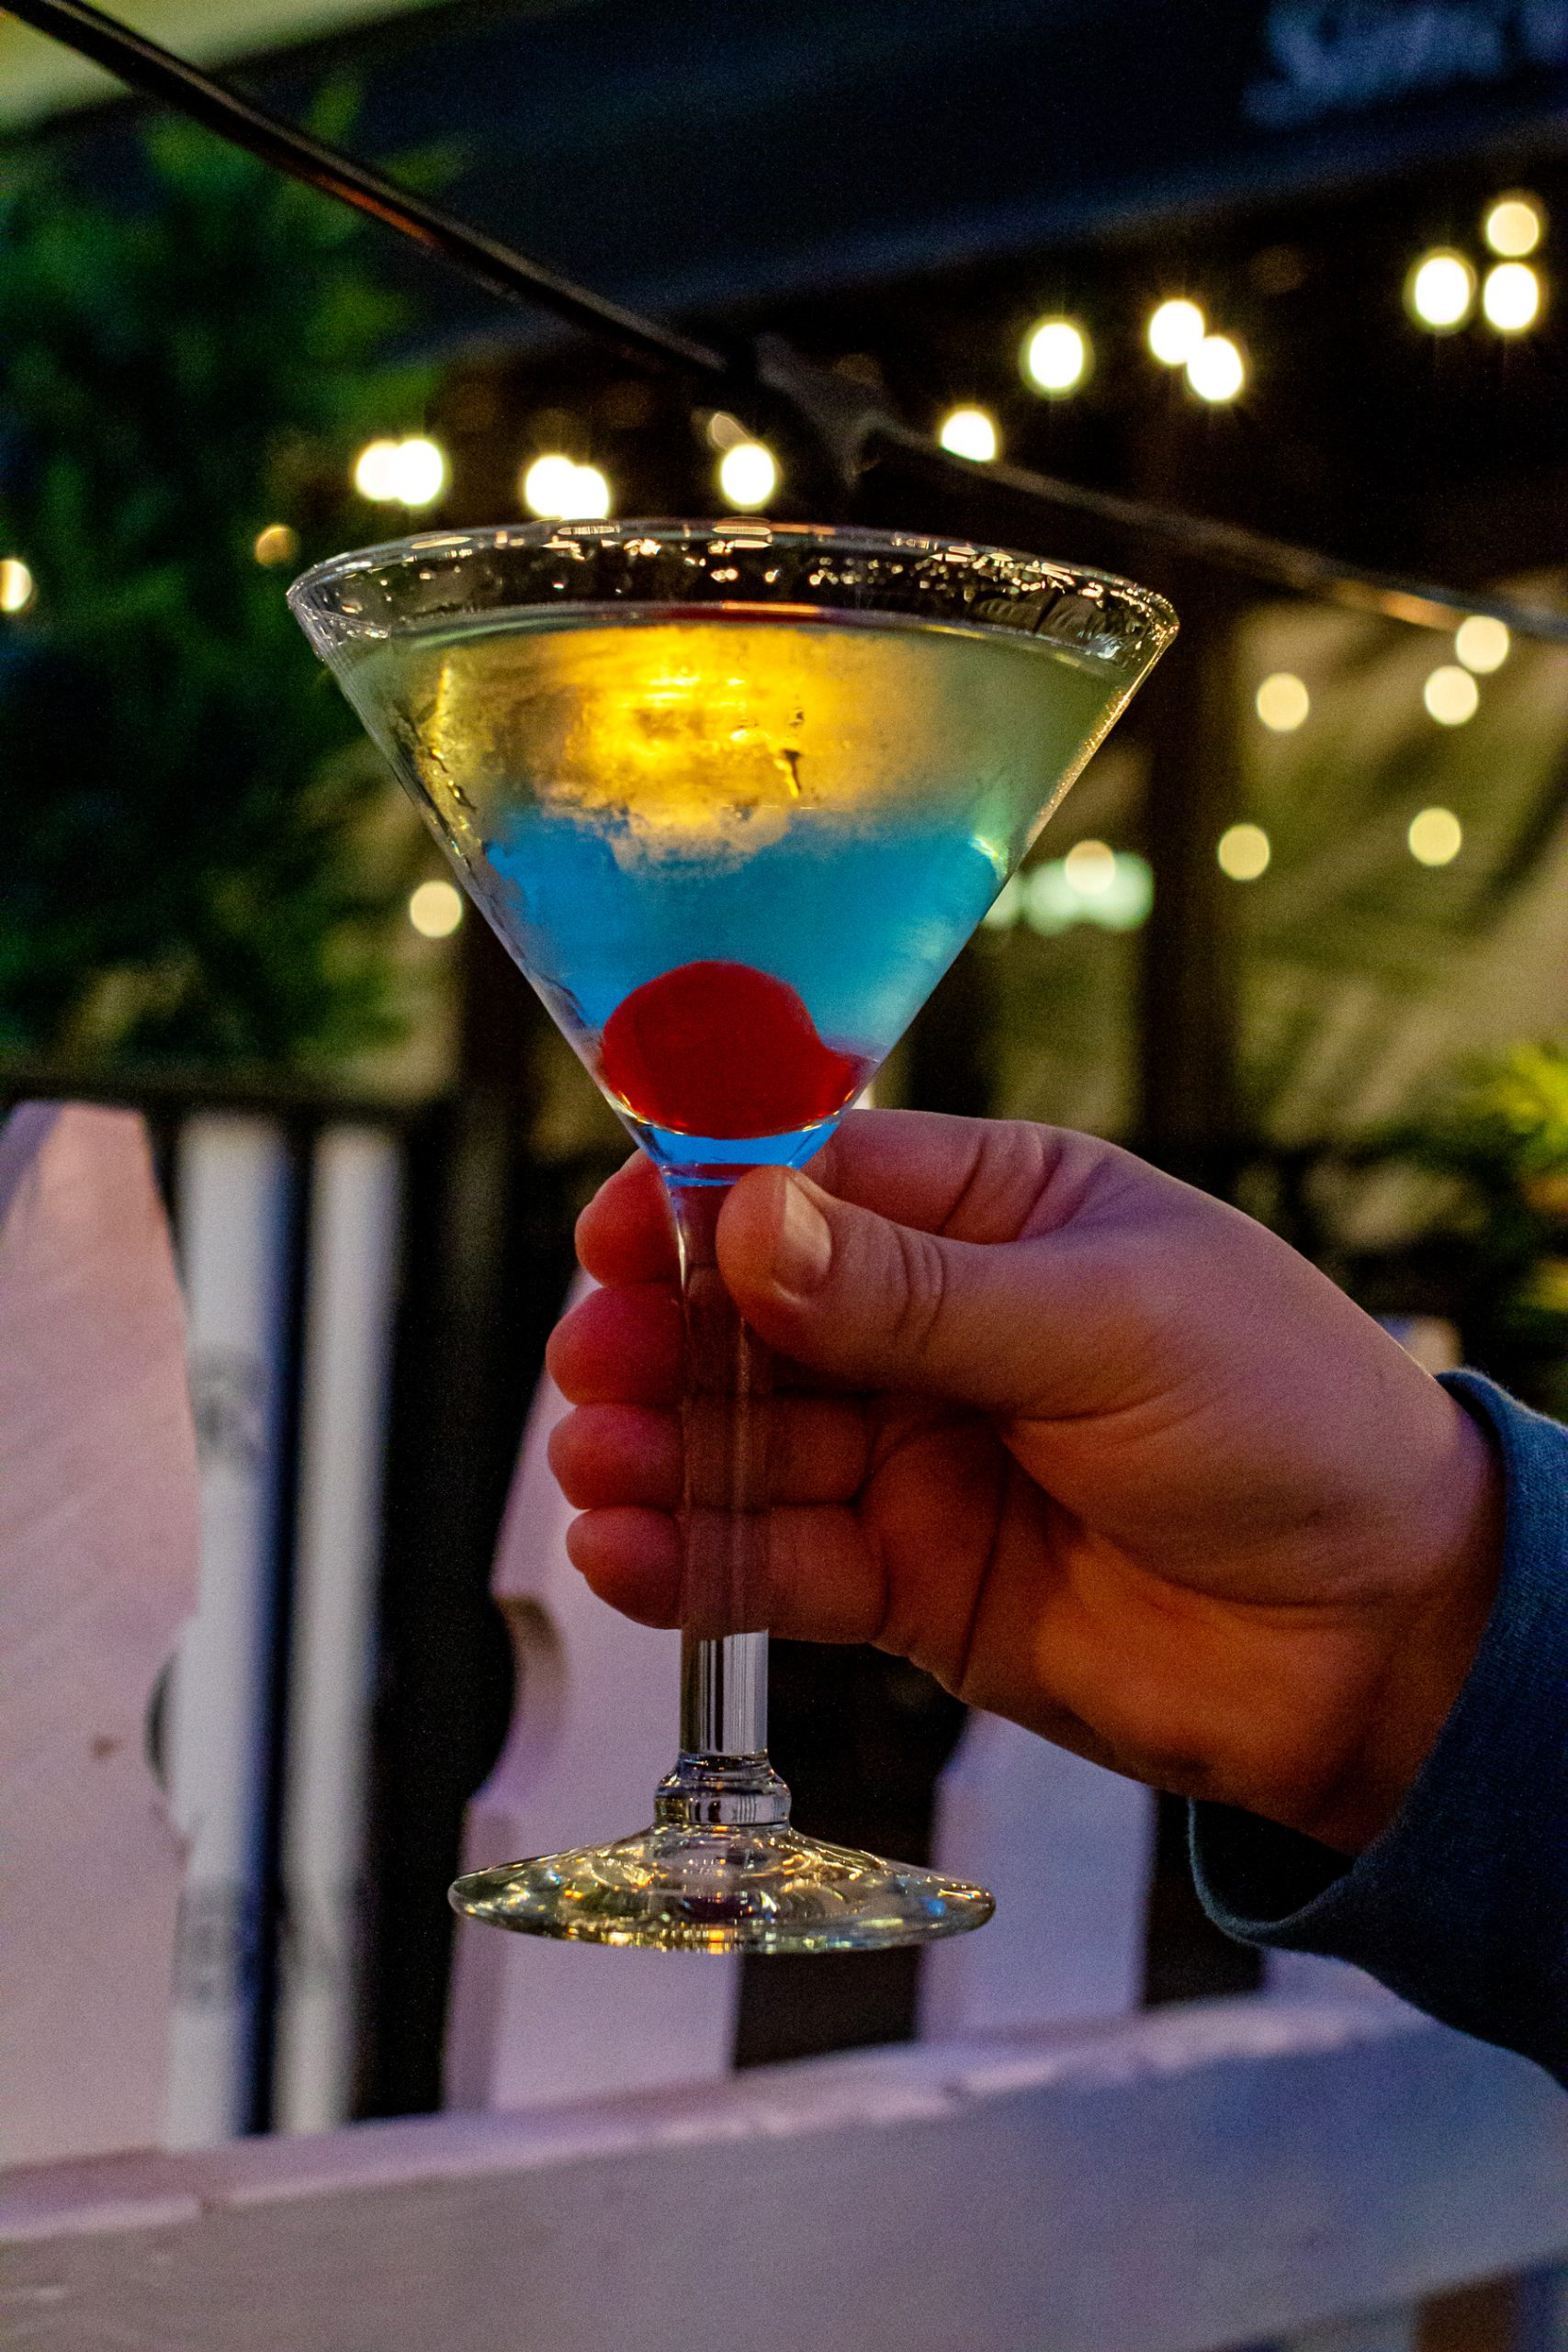 An apple martini being held up to decorative lights.